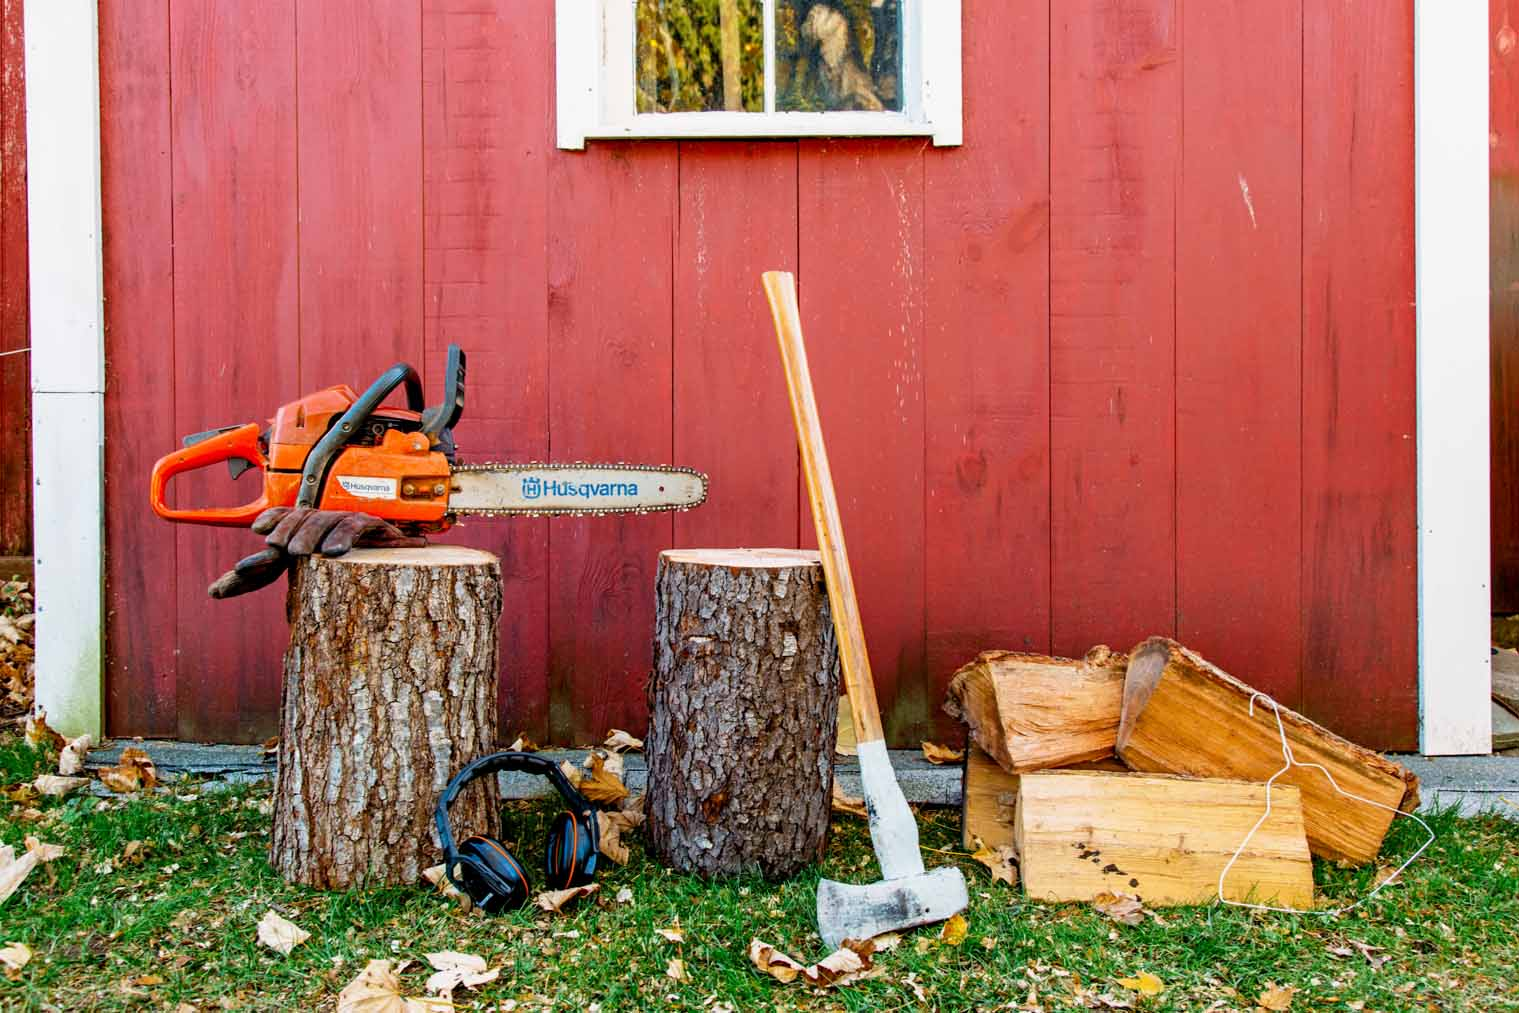 Firewood and wood cutting tools in front of a red shed